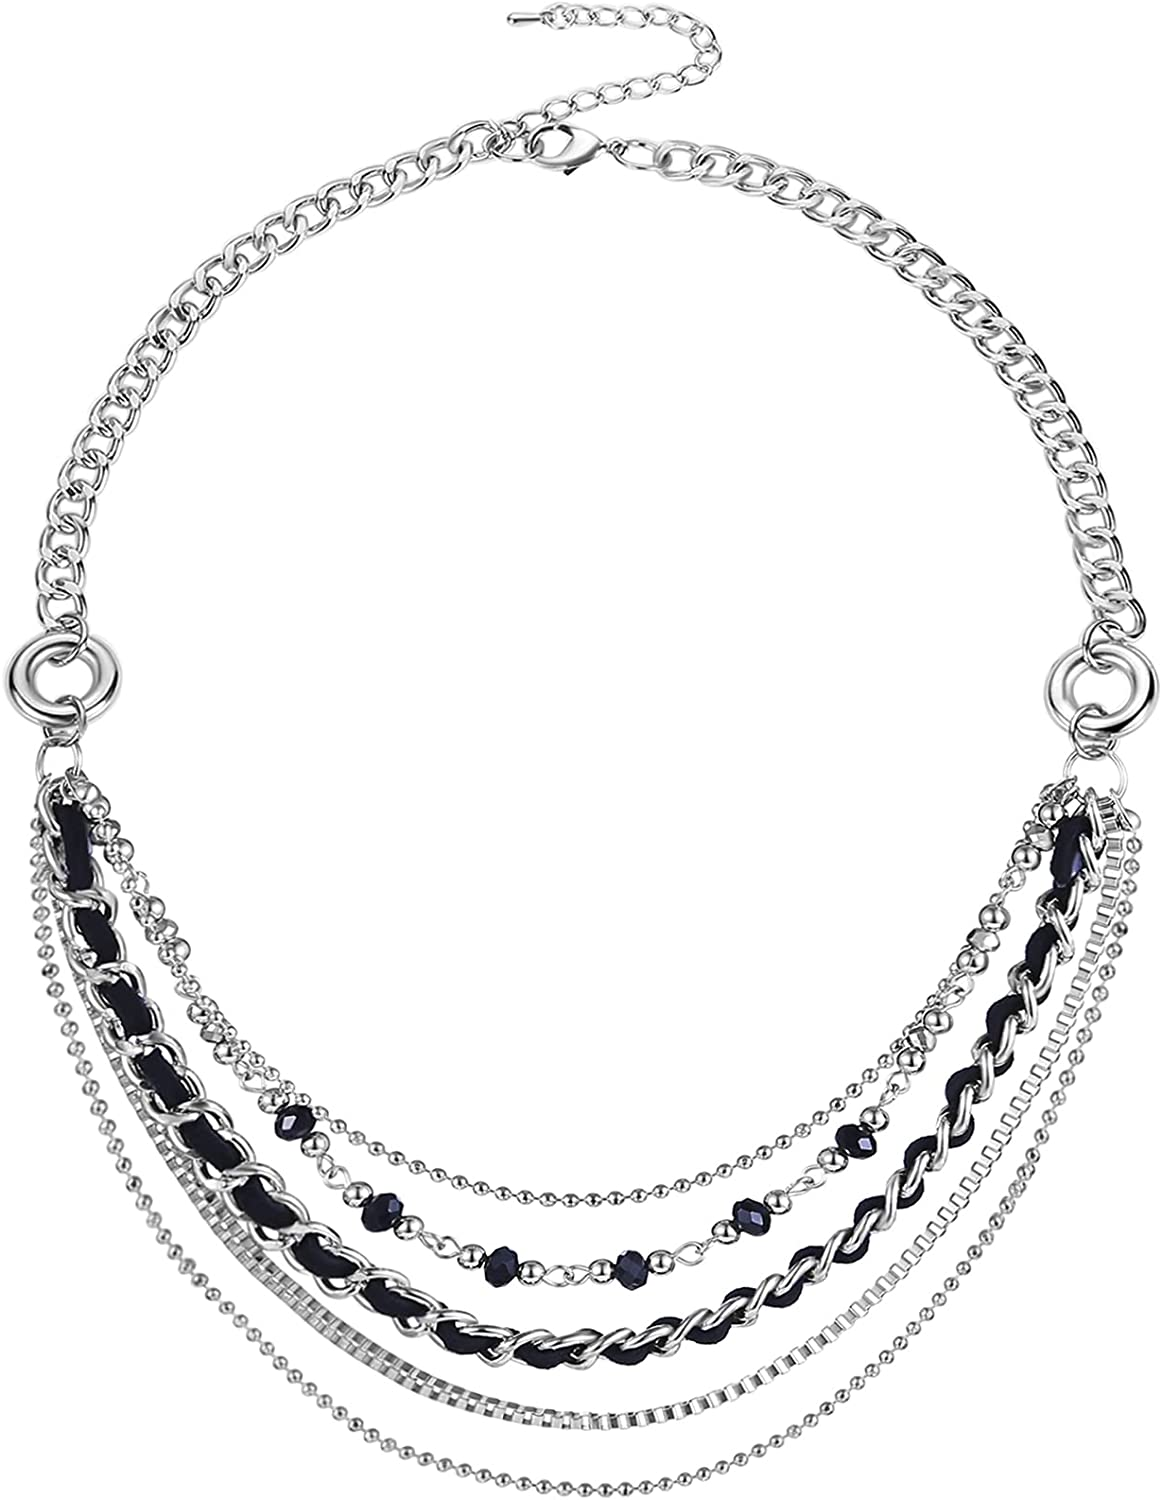 Layered Silver Chain Necklace Special Max 60% OFF Campaign for Punk Women Statement